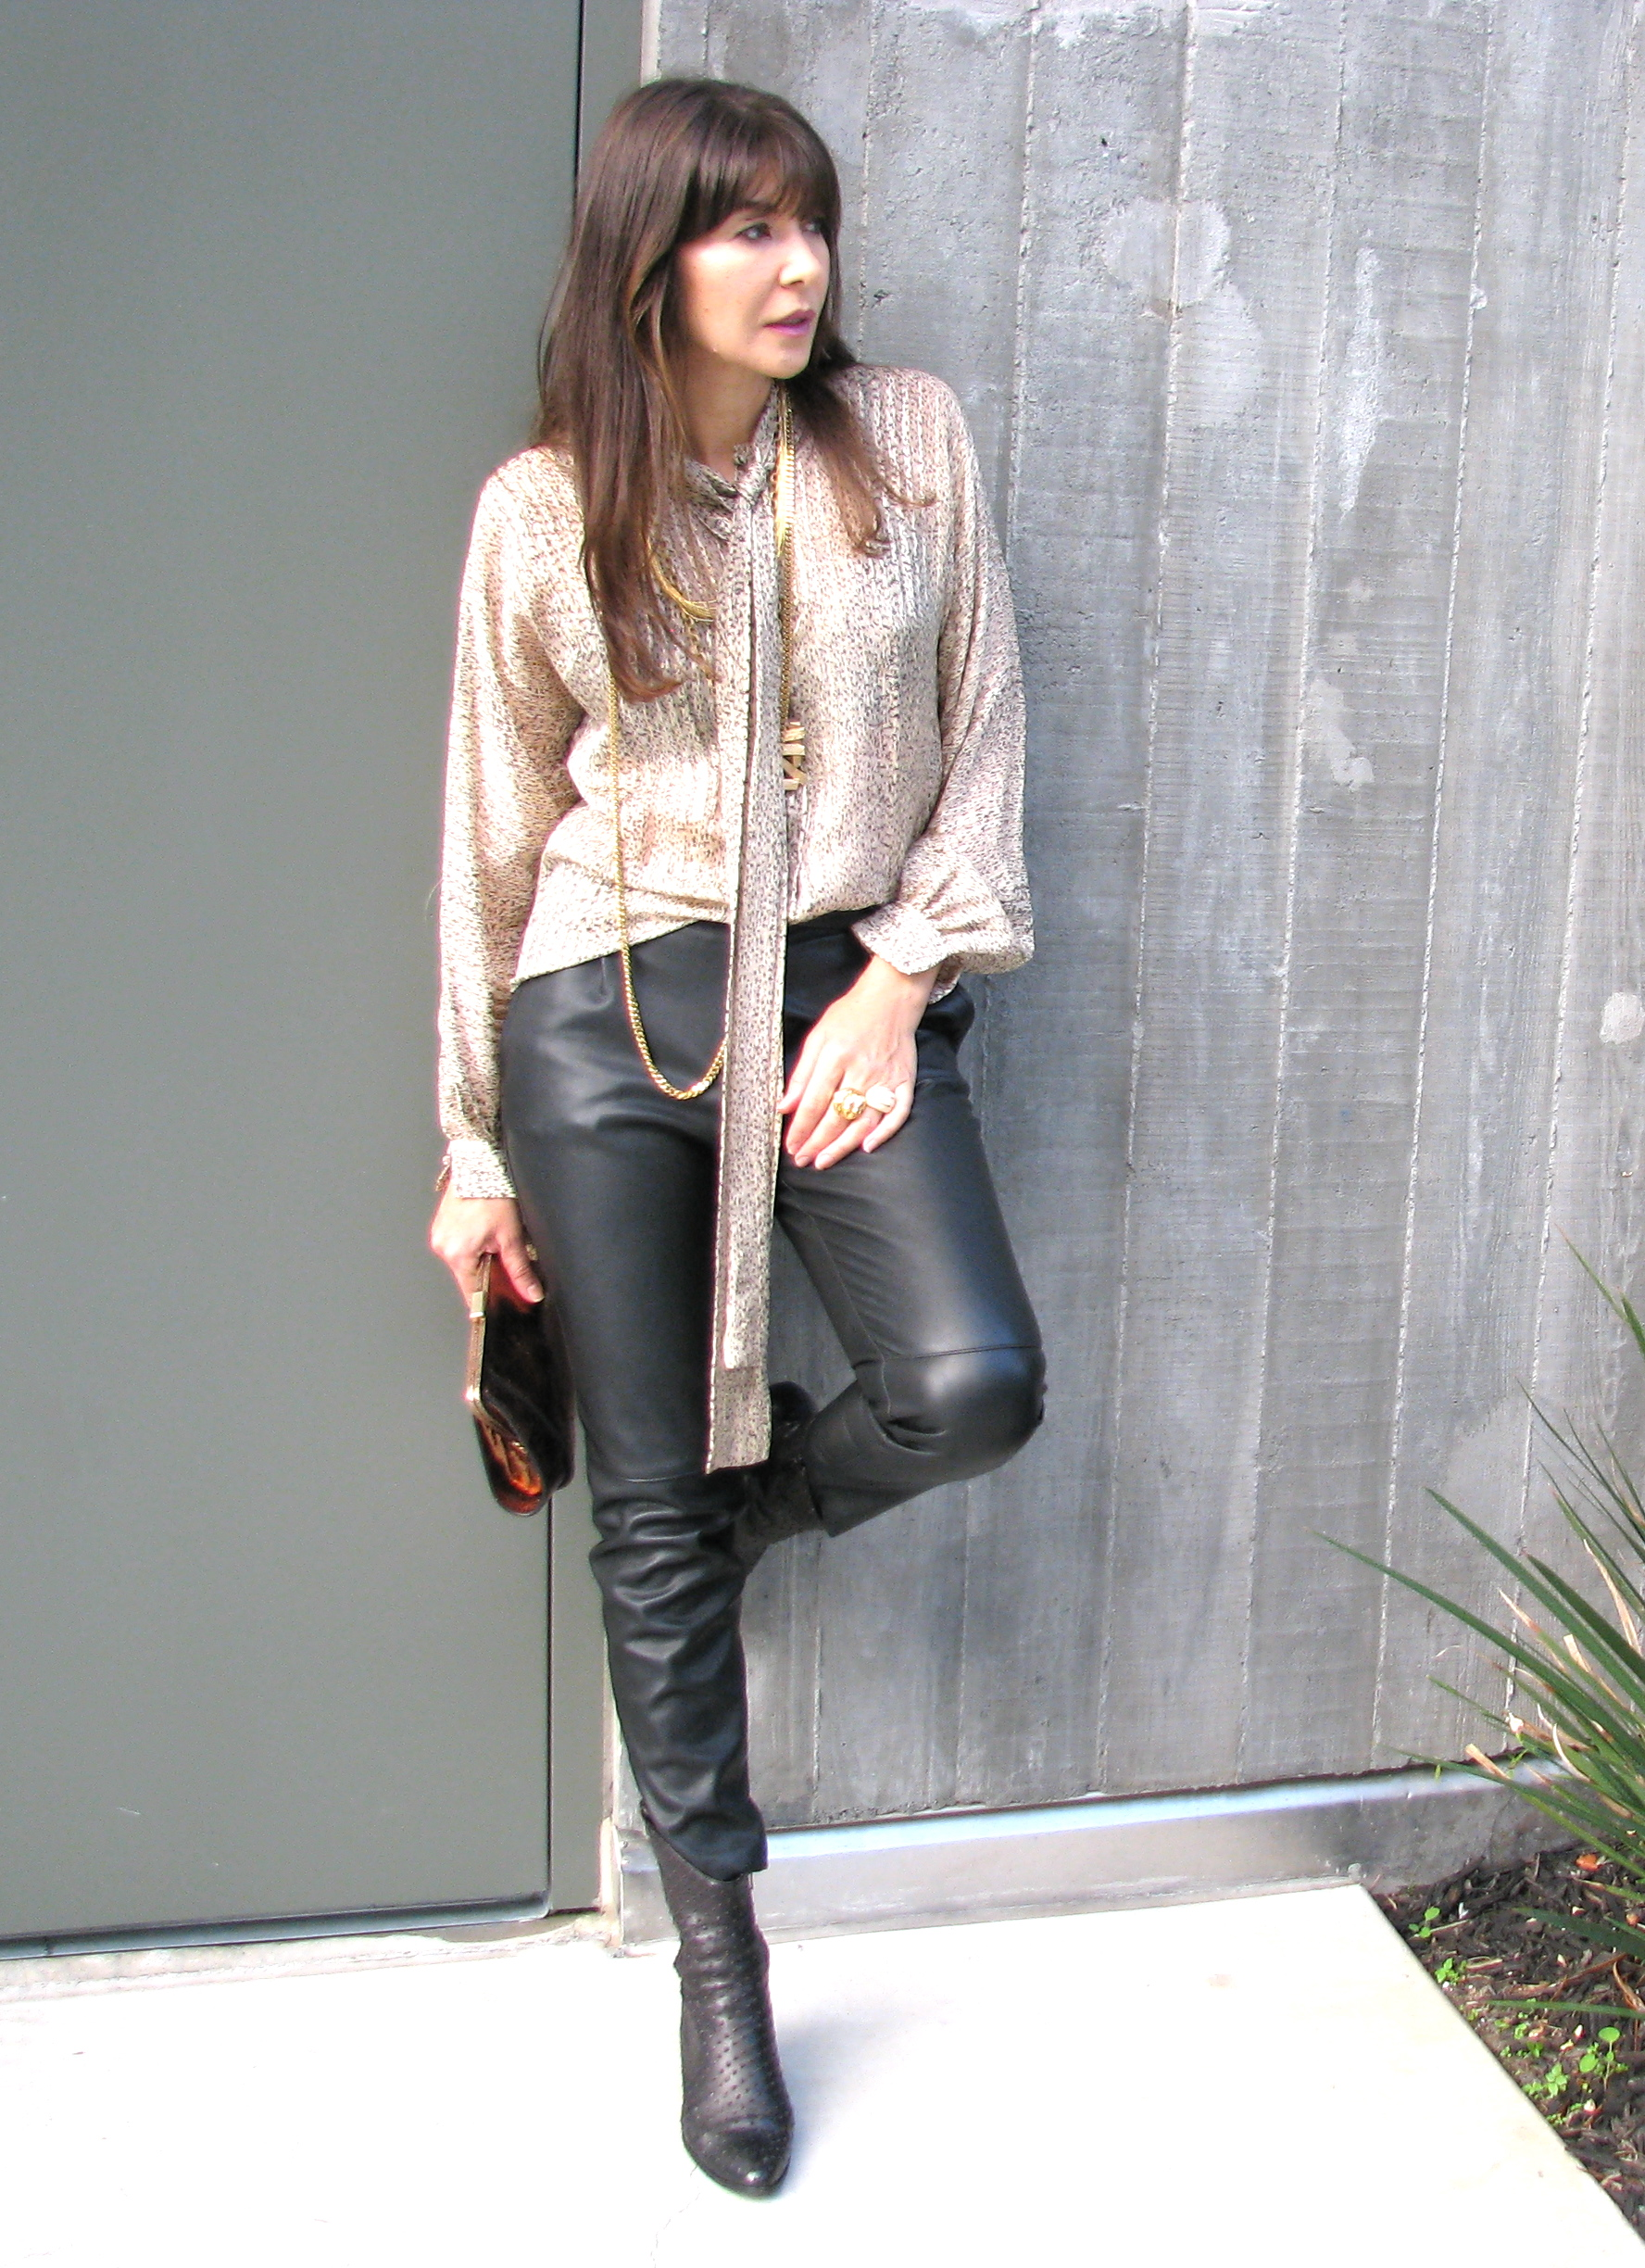 Tie blouse and leather pants